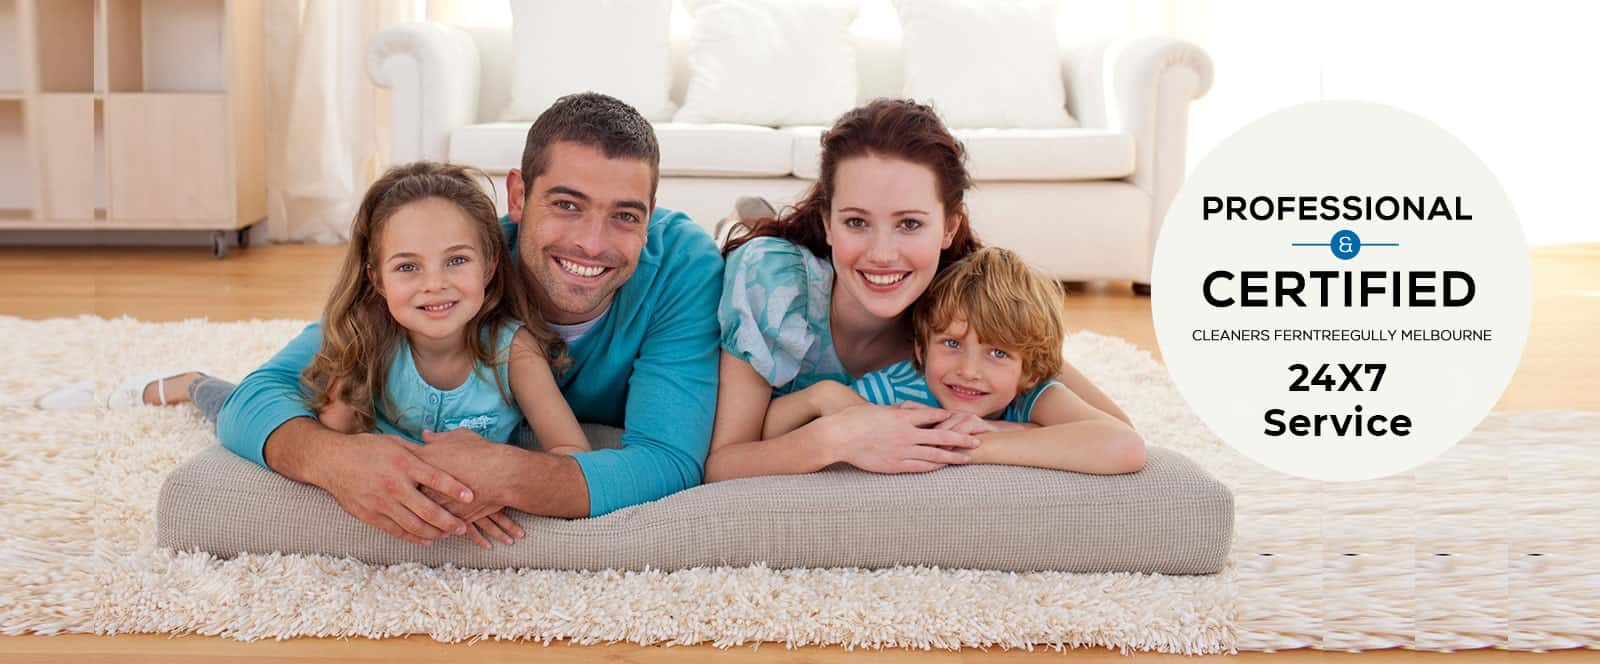 Power-Cleaning-Ferntreegully